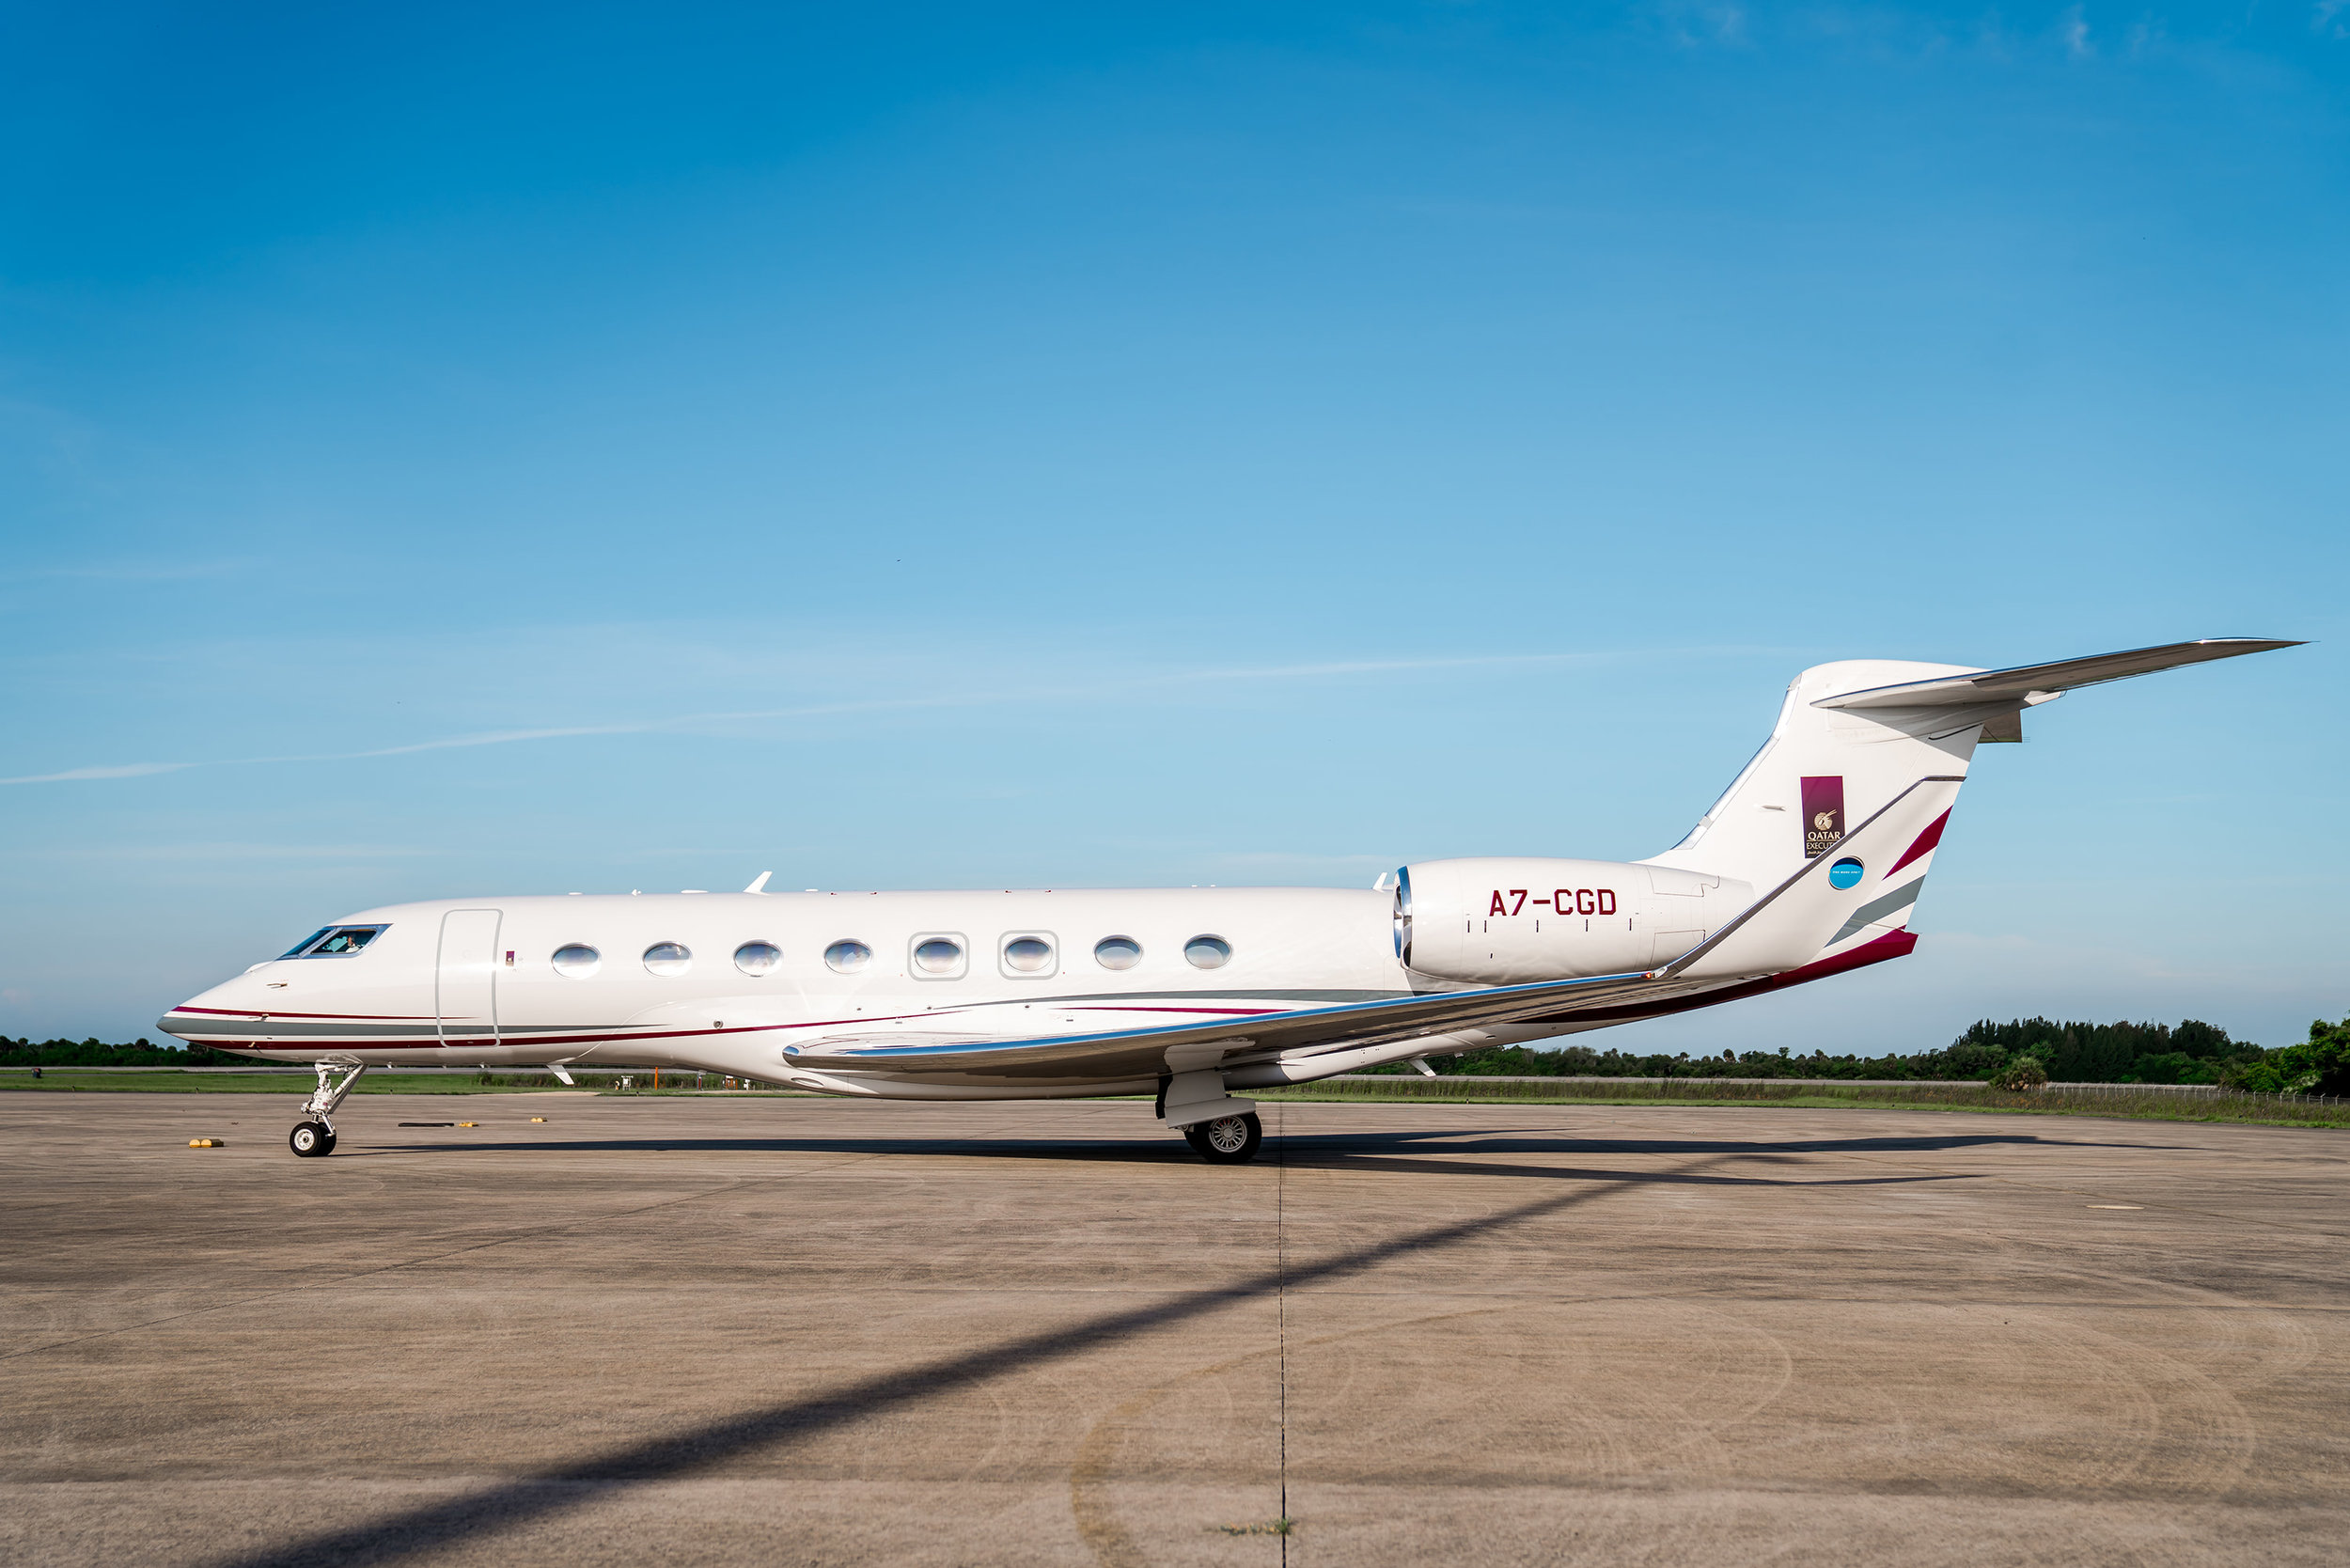 Qatar Executive G650ER used to achieve the world record